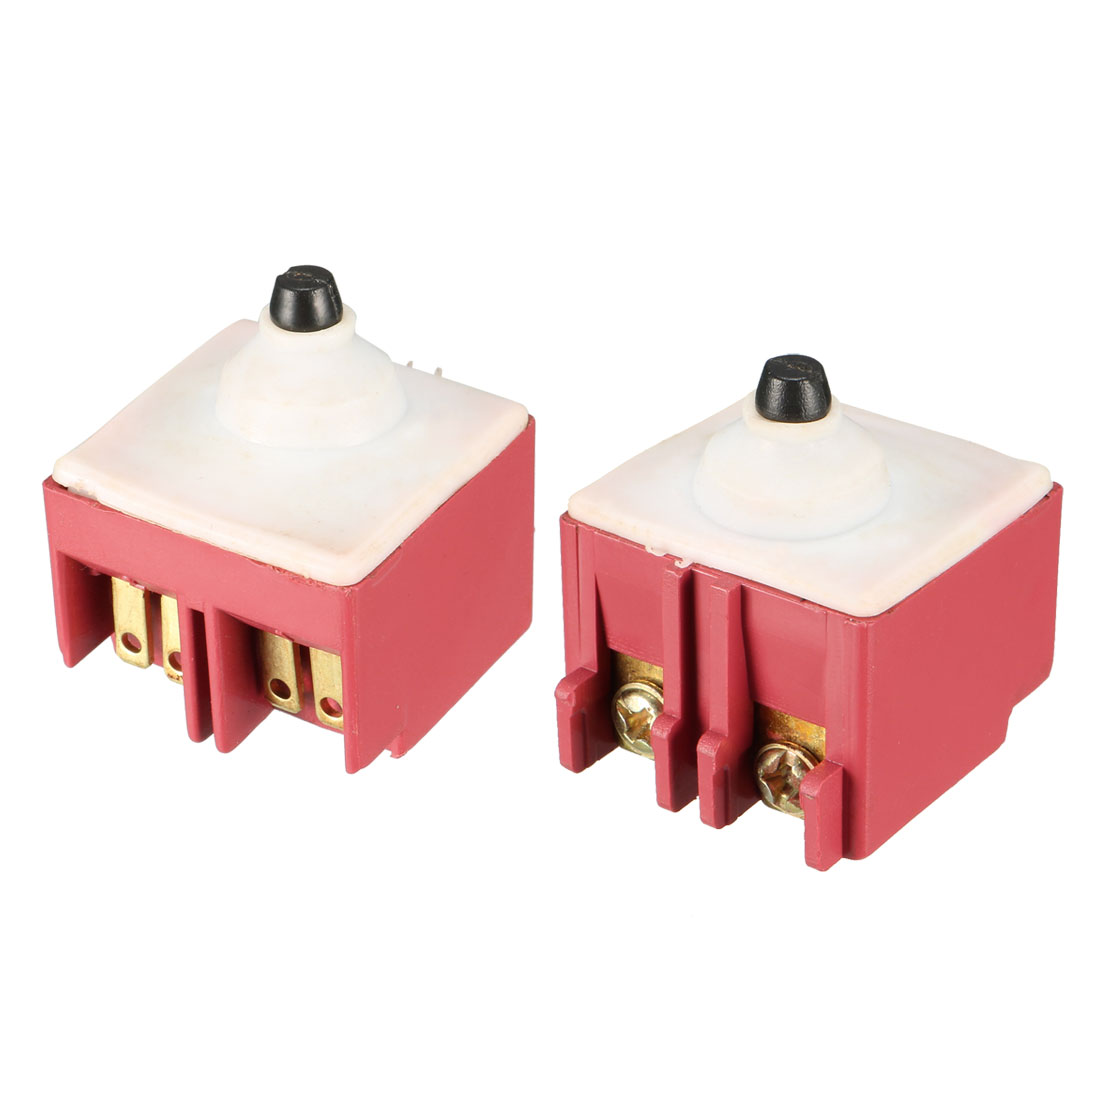 2 Pcs FA6-5/1D-24 Momentary Trigger Switch AC 250V 5A for Bosch Angle Grinder 6-100